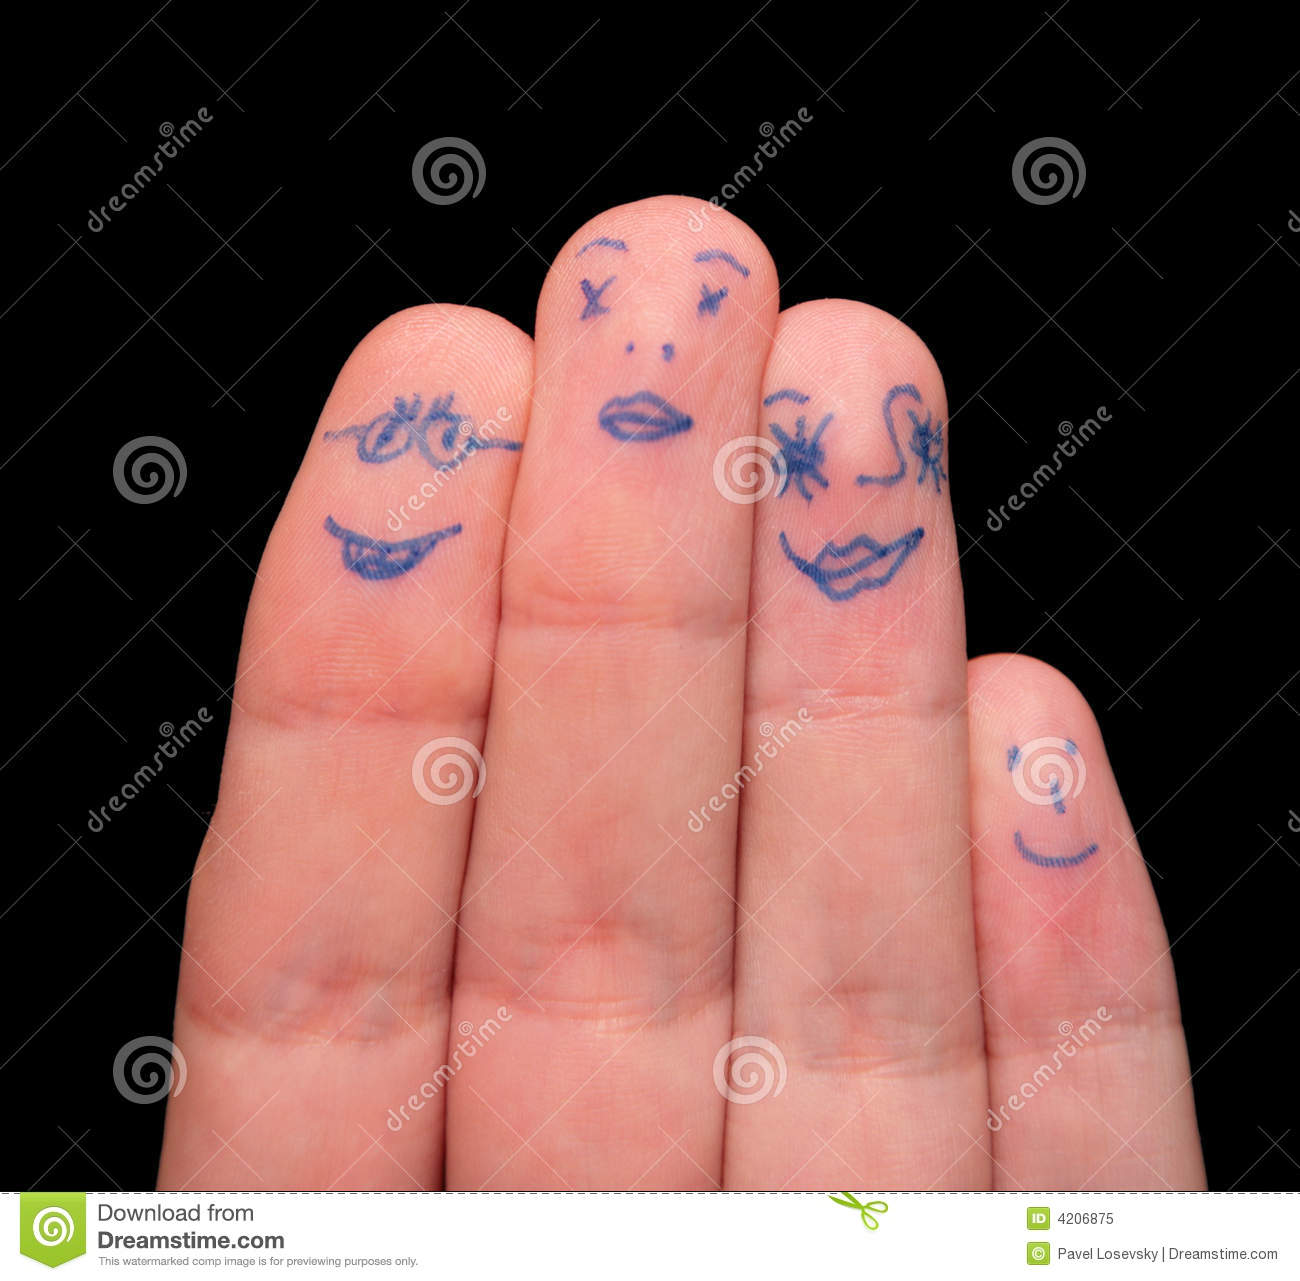 Faces painted on fingers